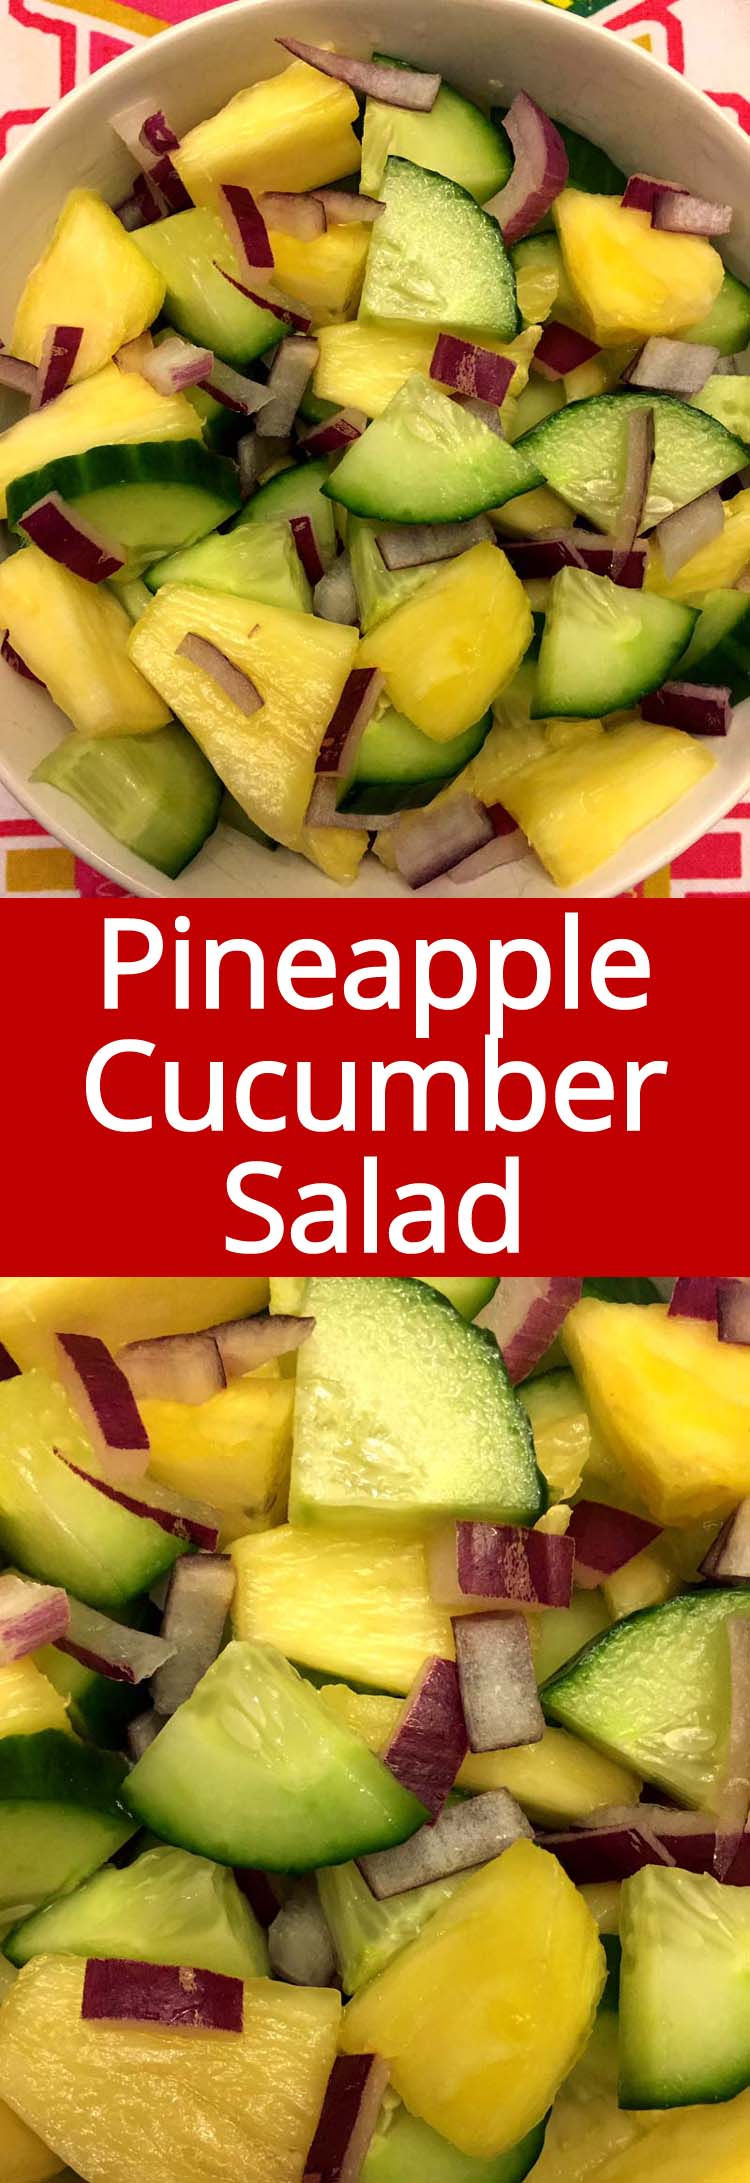 This pineapple cucumber salad is amazing! So healthy and refreshing! I can eat the whole bowl in one sitting!